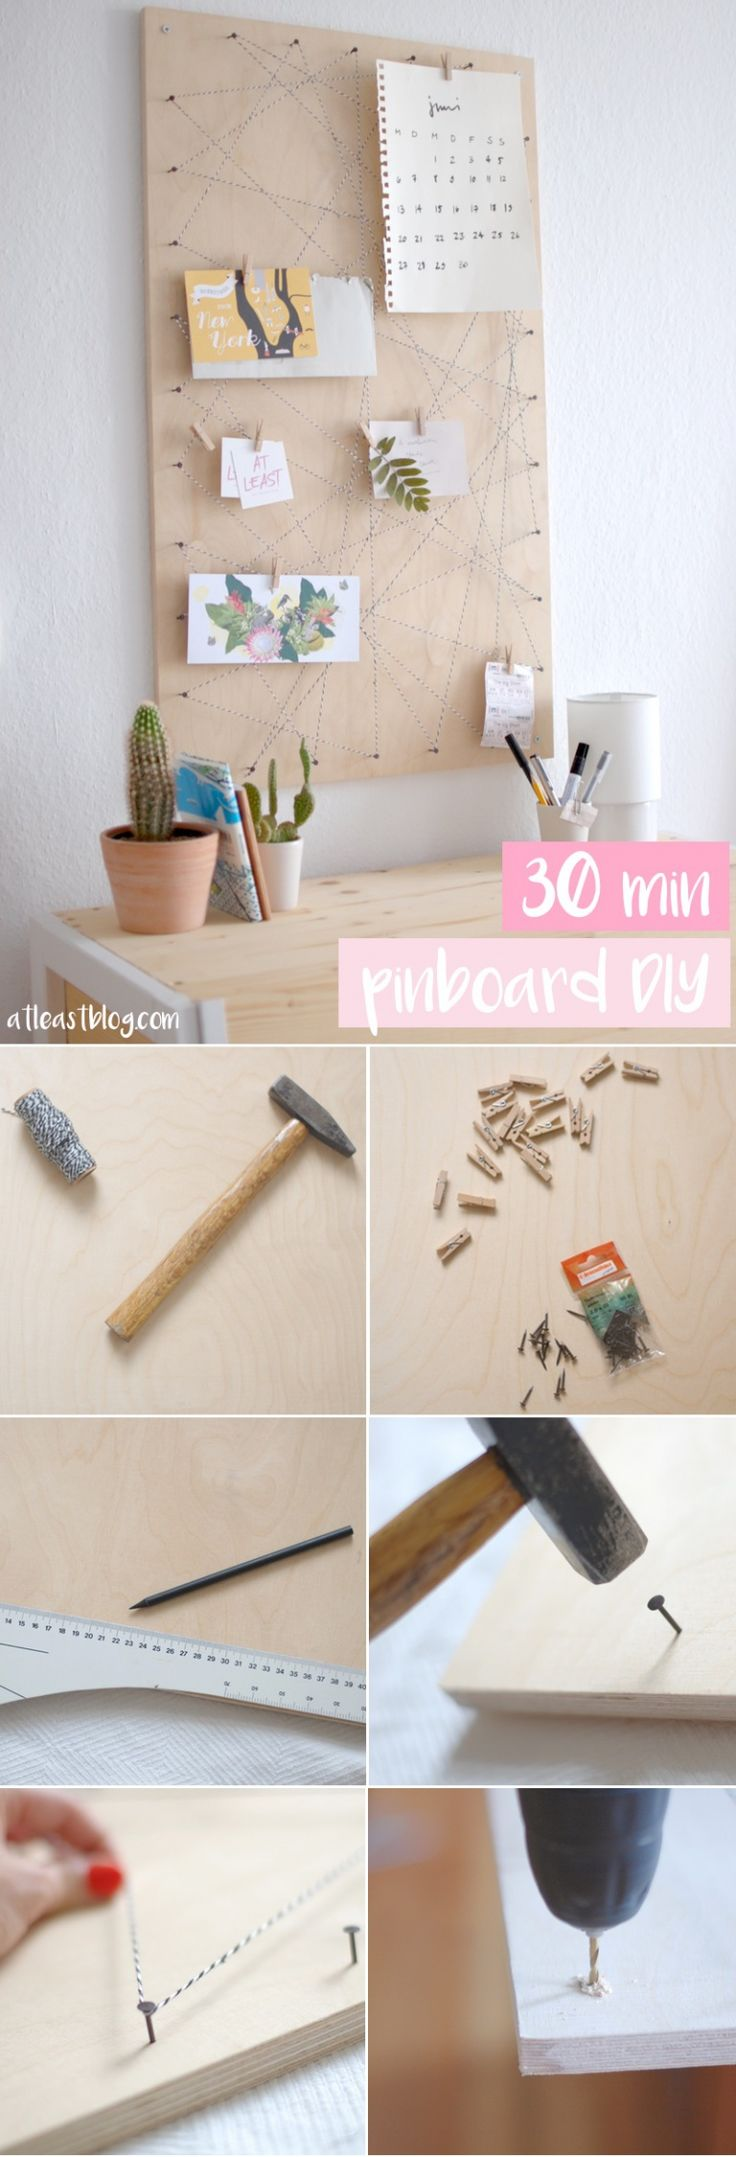 7 best my room images on Pinterest | Crafts, Diy presents and Diy ...